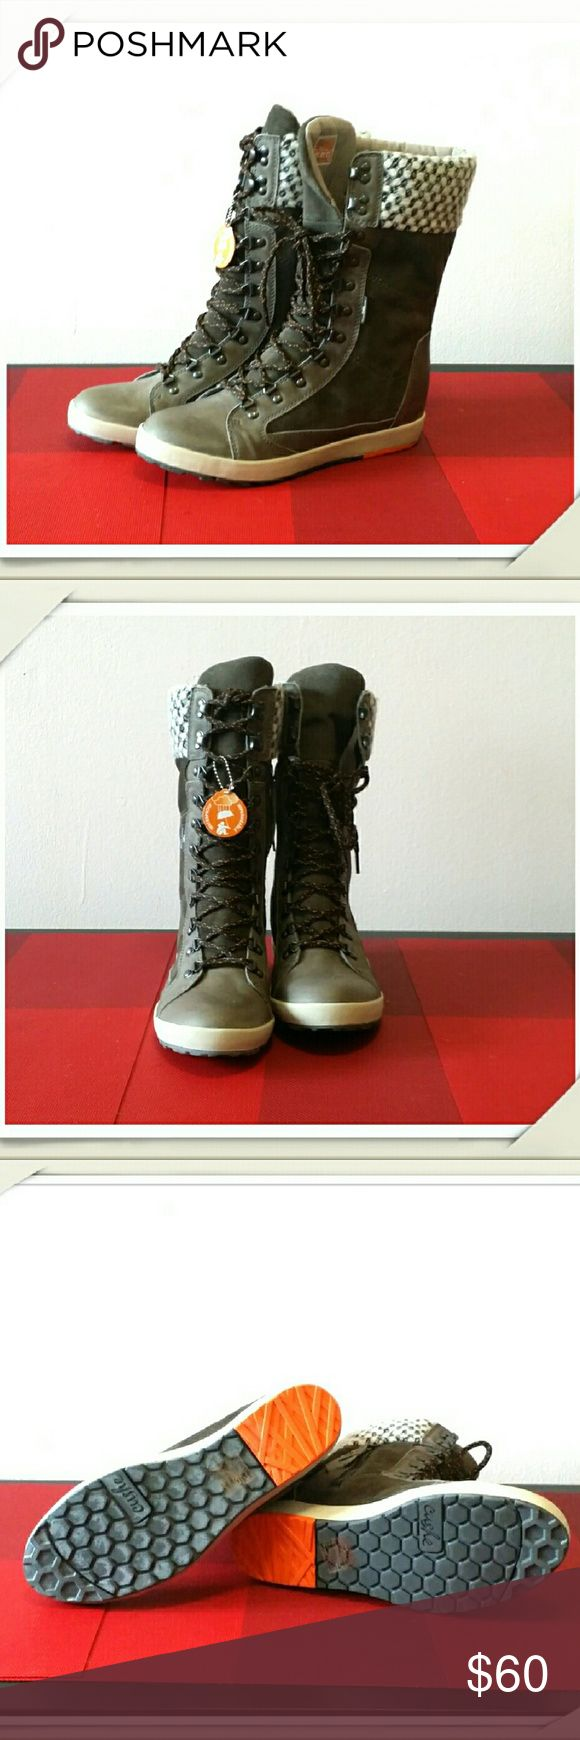 New Cushe Winter Boots Brand new. Very cute.  So comfortable. Leather and suede. Warm. Waterproof. Lace up and zipper on side. Size 10M. cushe Shoes Winter & Rain Boots